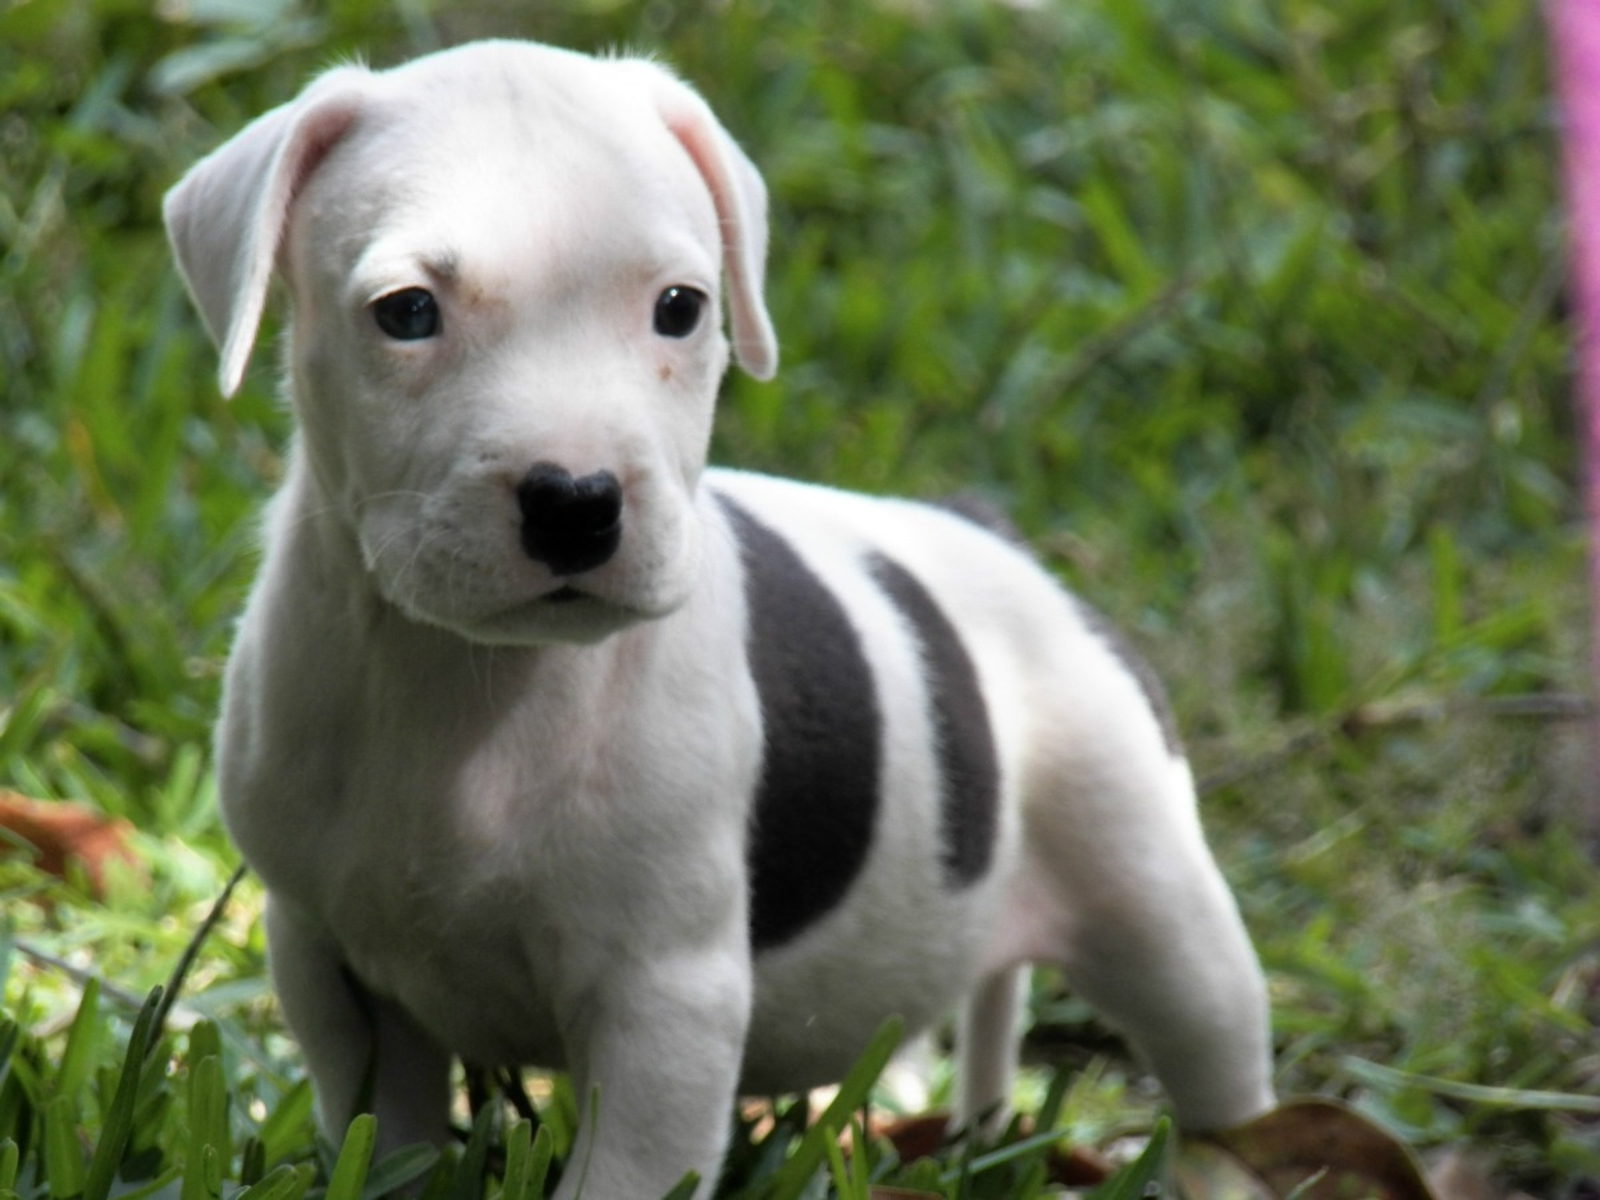 Pitbull puppies wallpaper high definition high quality - Pitbull dogs pictures wallpaper ...